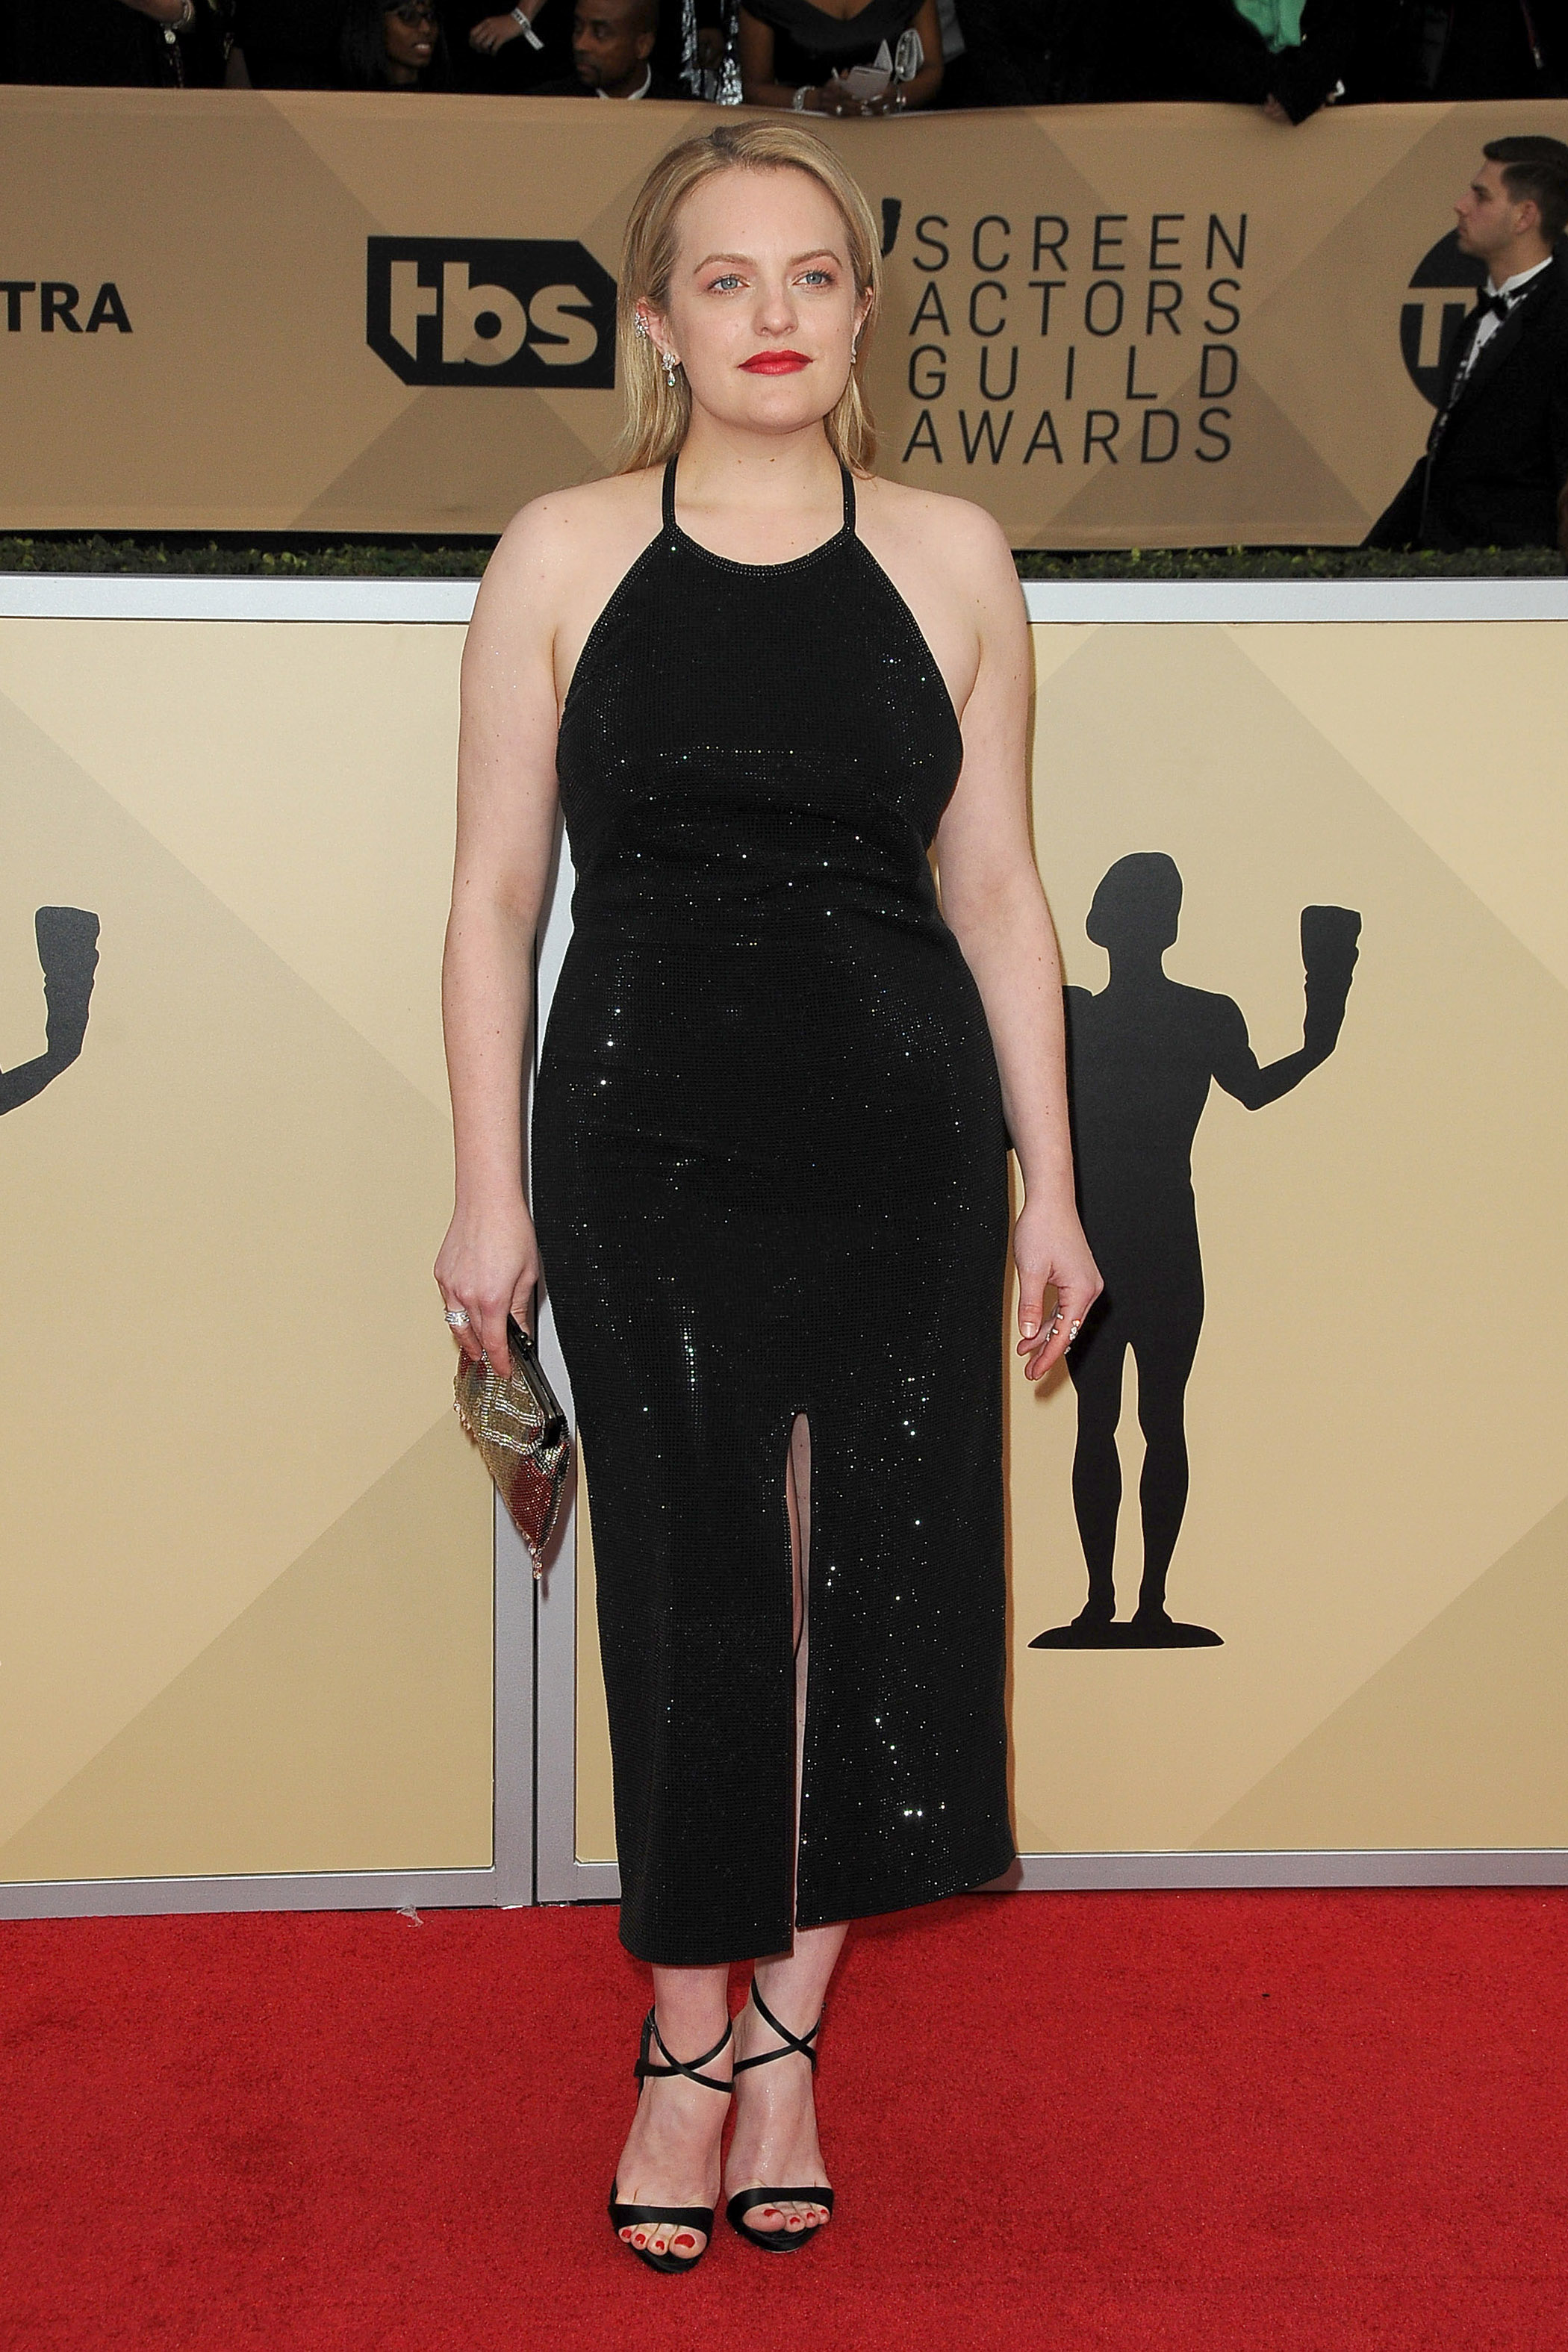 Arrivals for the 24th Annual Screen Actors Guild Awards, held at the Shrine Exposition Center in Los Angeles, California <P> Pictured: Elisabeth Moss <B>Ref: SPL1649120  210118  </B><BR/> Picture by: Splash News<BR/> </P><P> <B>Splash News and Pictures</B><BR/> Los Angeles:	310-821-2666<BR/> New York:	212-619-2666<BR/> London:	870-934-2666<BR/> <span id=